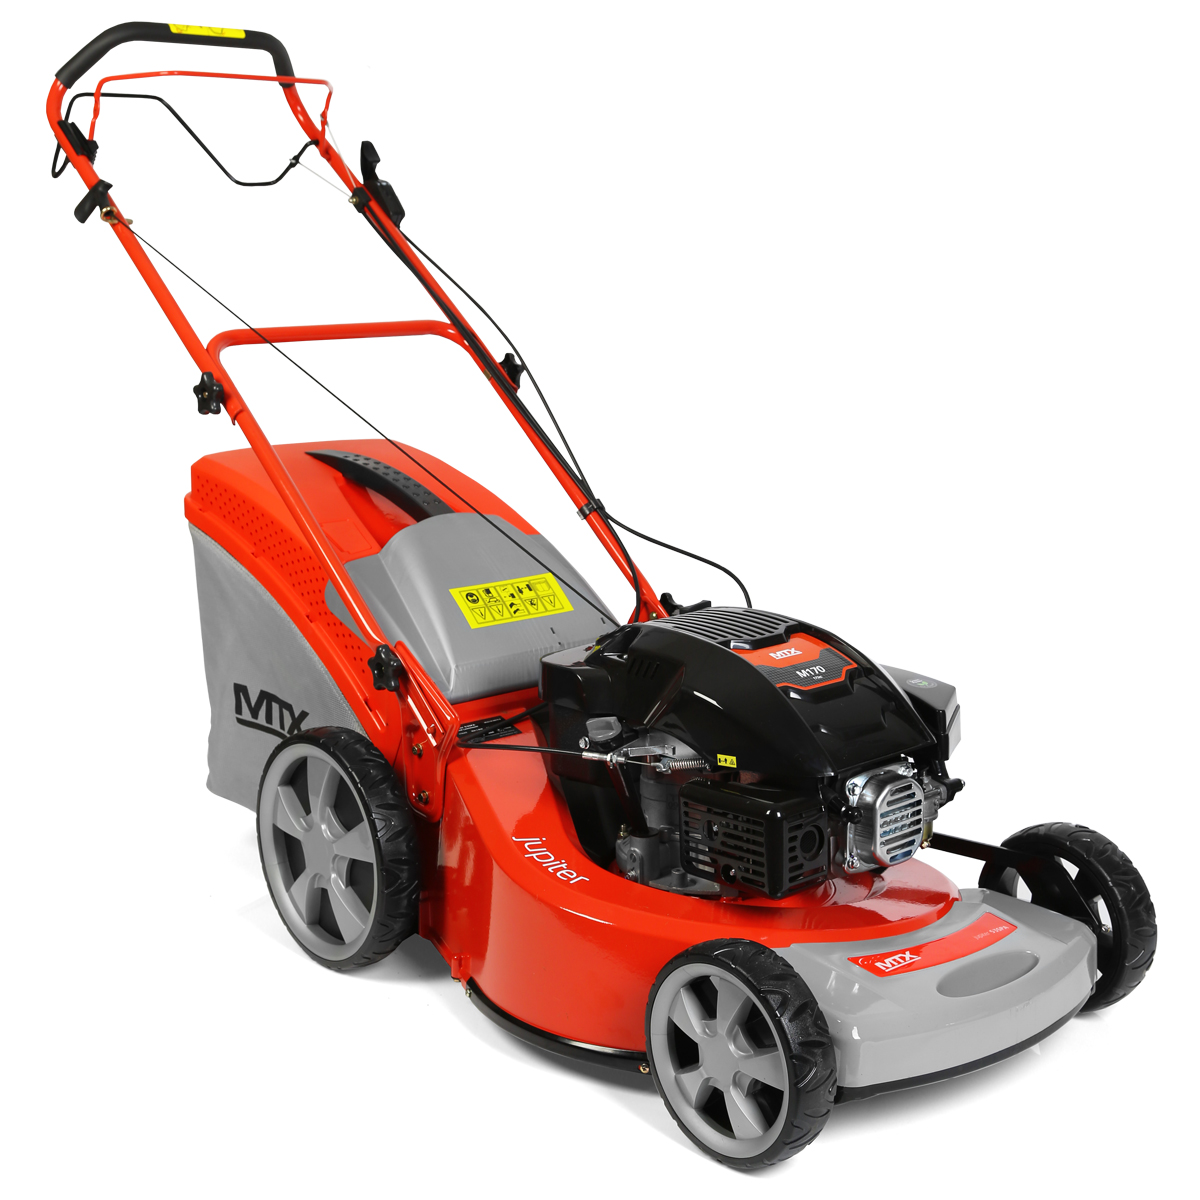 Mtx jupiter 53spa self propelled petrol lawnmower with for Decking special offers